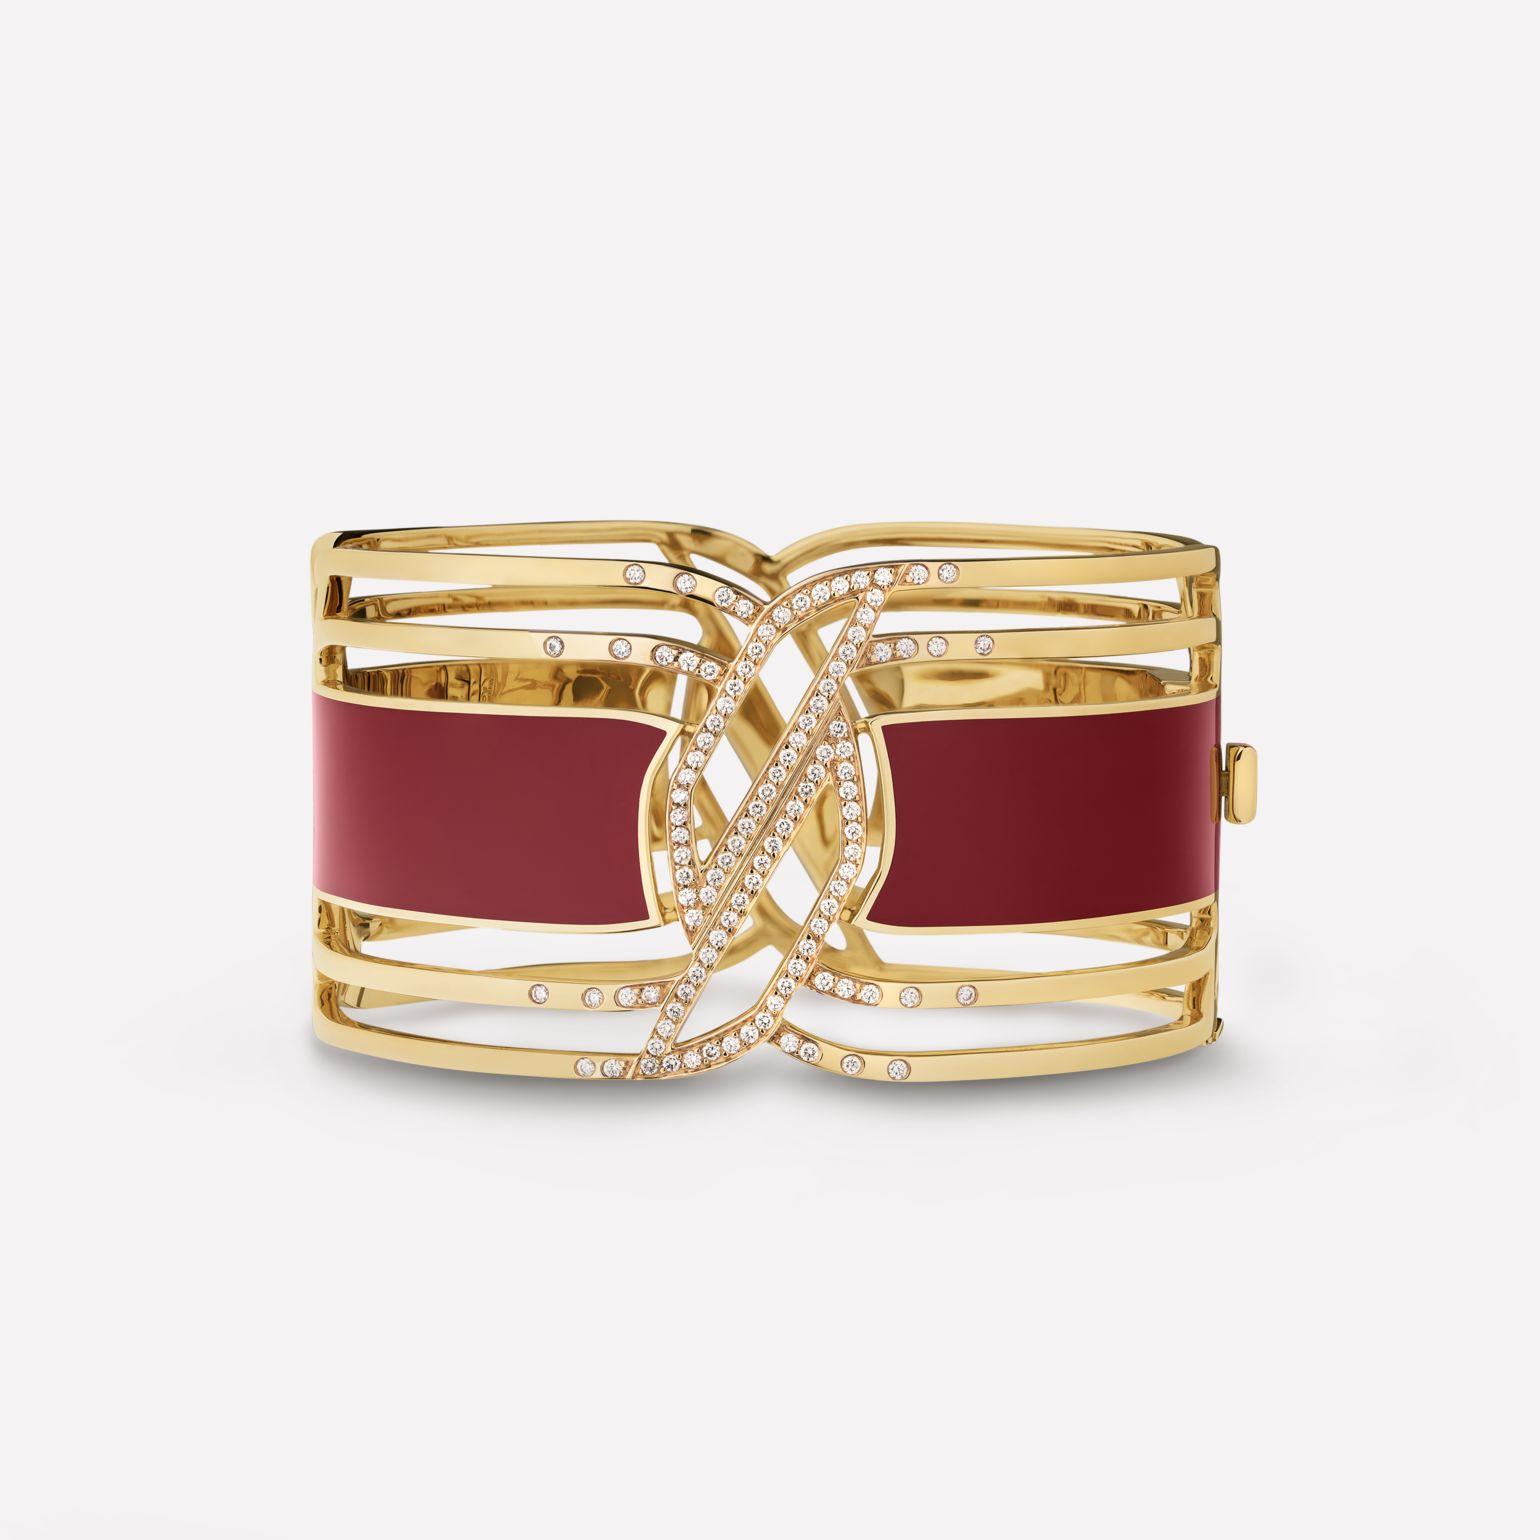 Manchette My Red Or jaune 18 carats, HyCeram® rouge et diamants